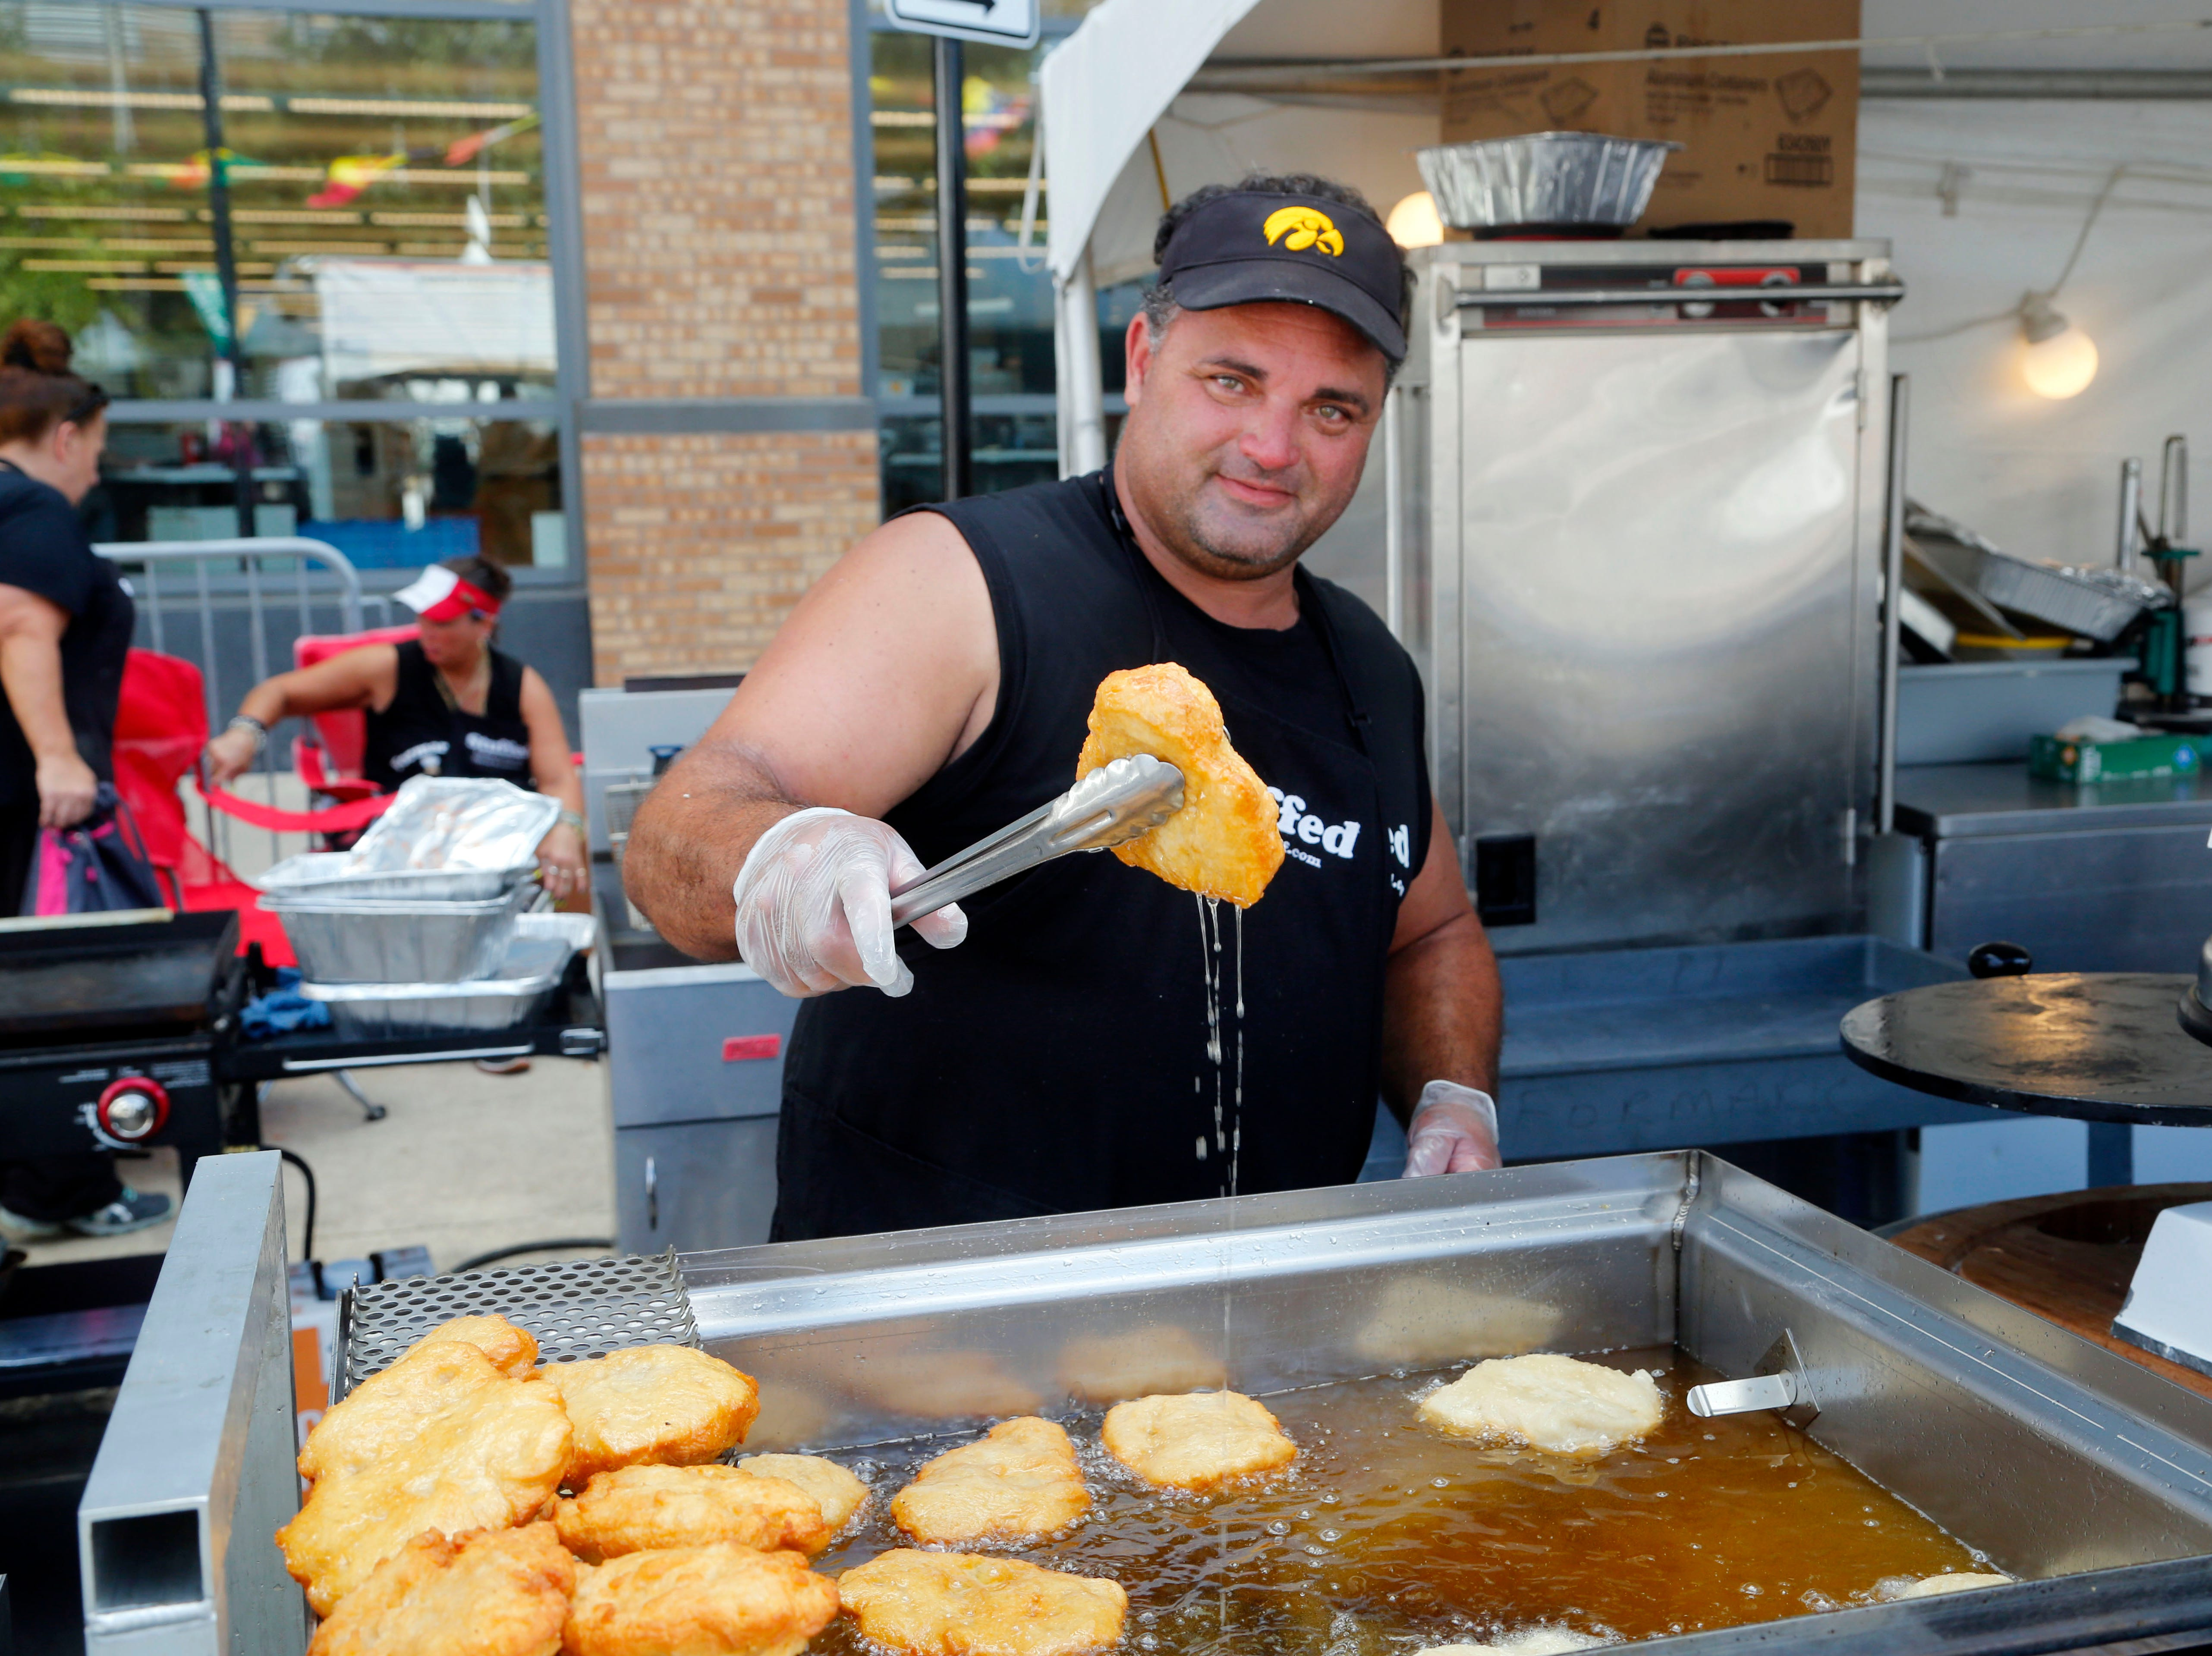 Scott Formaro fries bread for his sandwiches at the Formaro's Stuffed booth at the World Food and Music Festival in Des Moines Sept. 14, 2018.